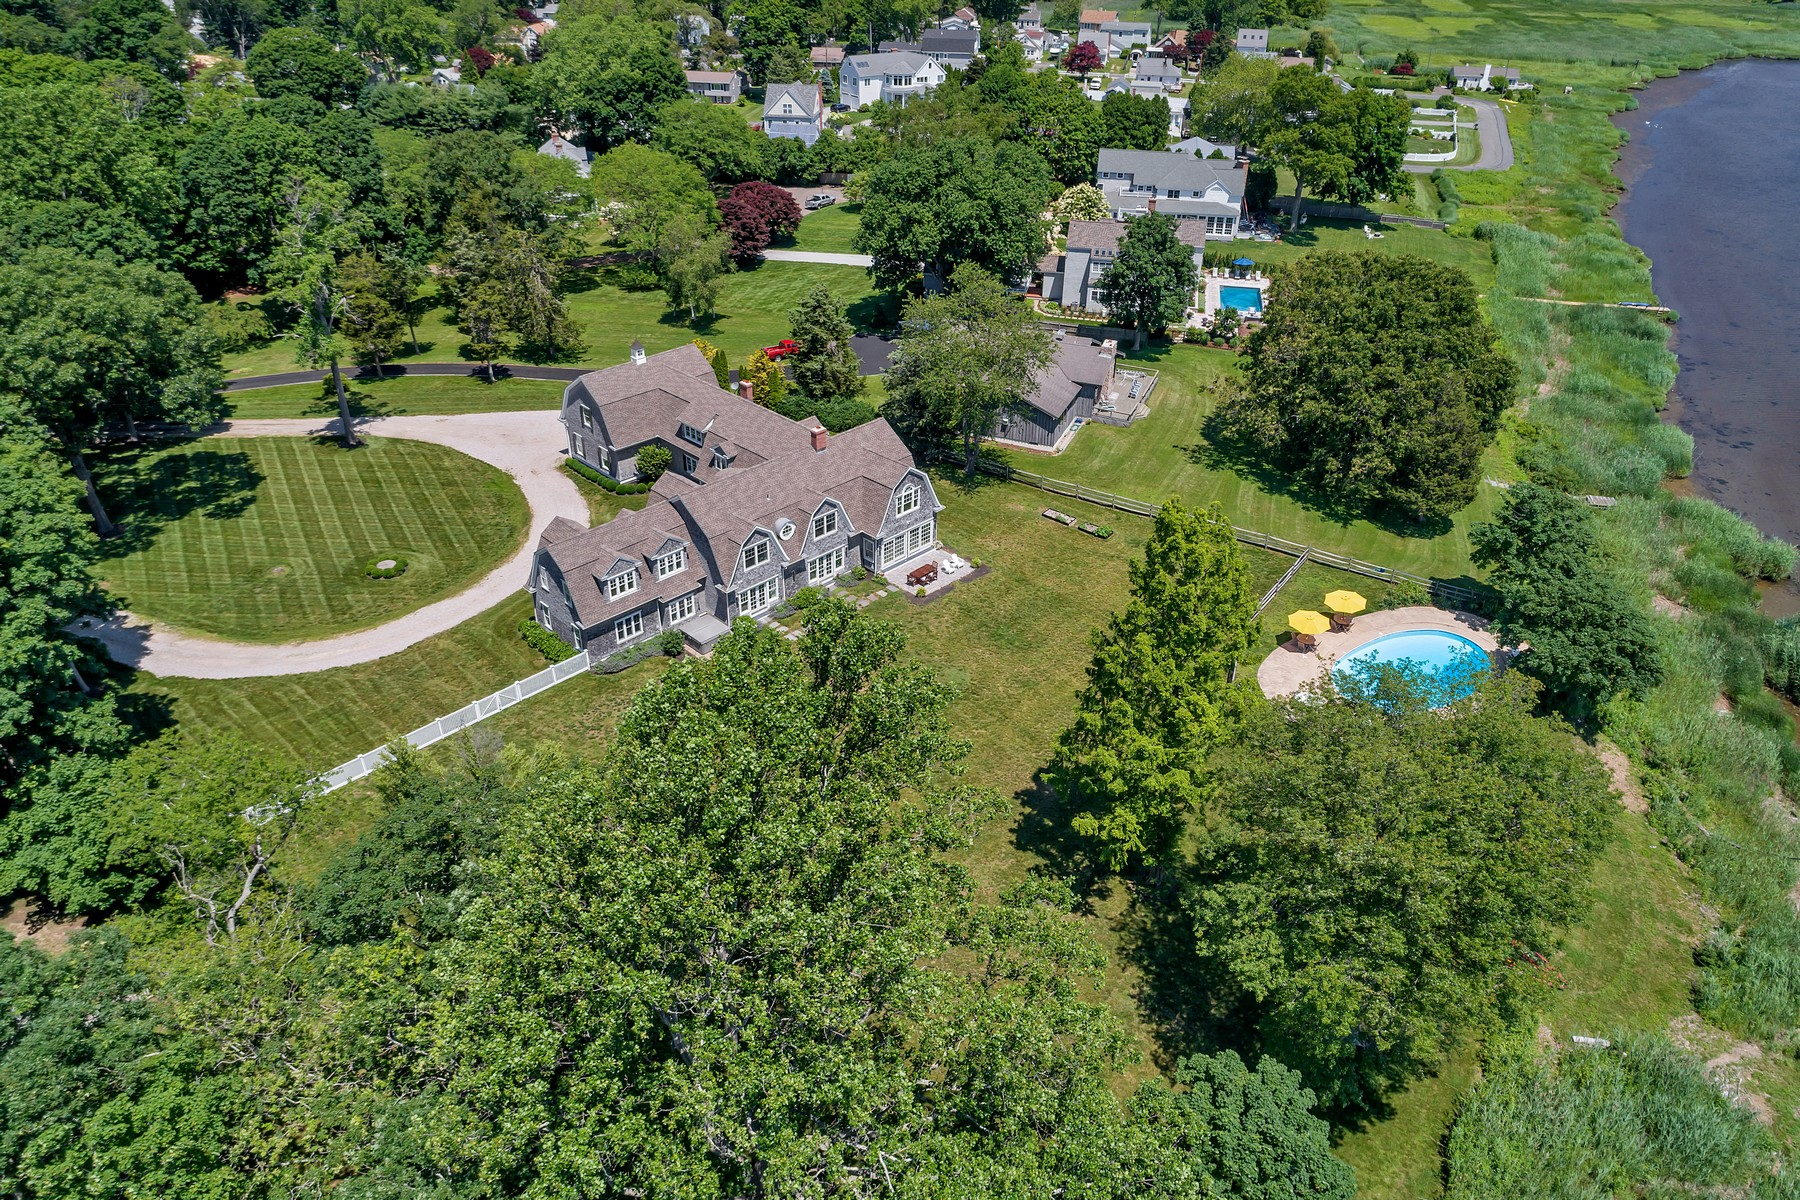 Single Family Homes for Sale at Hamptons-Style Residence on 2 Waterfront Acres 9 Cedar Lane, Old Saybrook, Connecticut 06475 United States